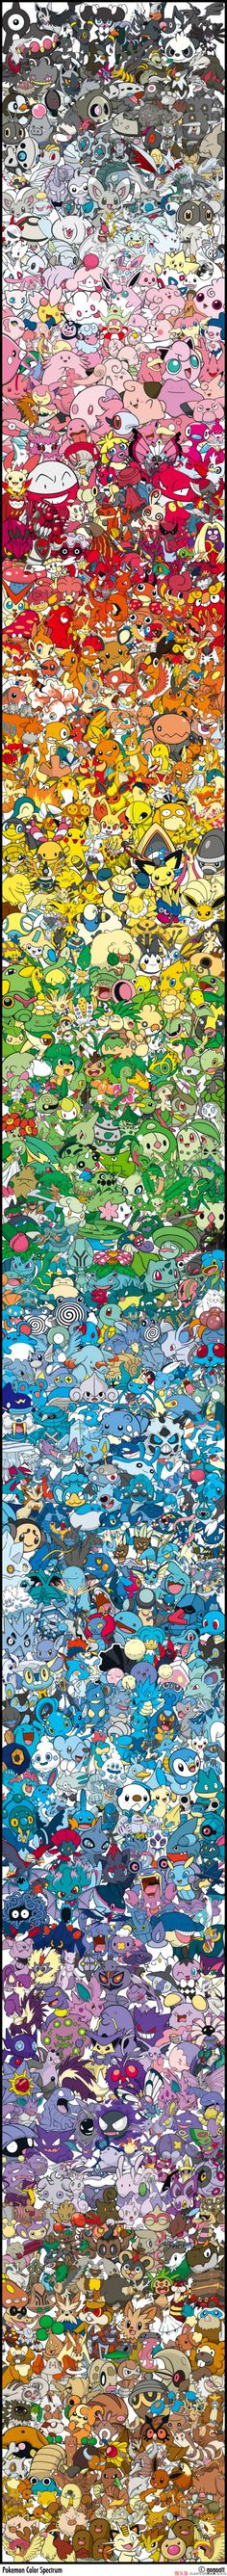 All Pokemon (not sure if it includes the most recent generation because I don't care) sorted chromatically.